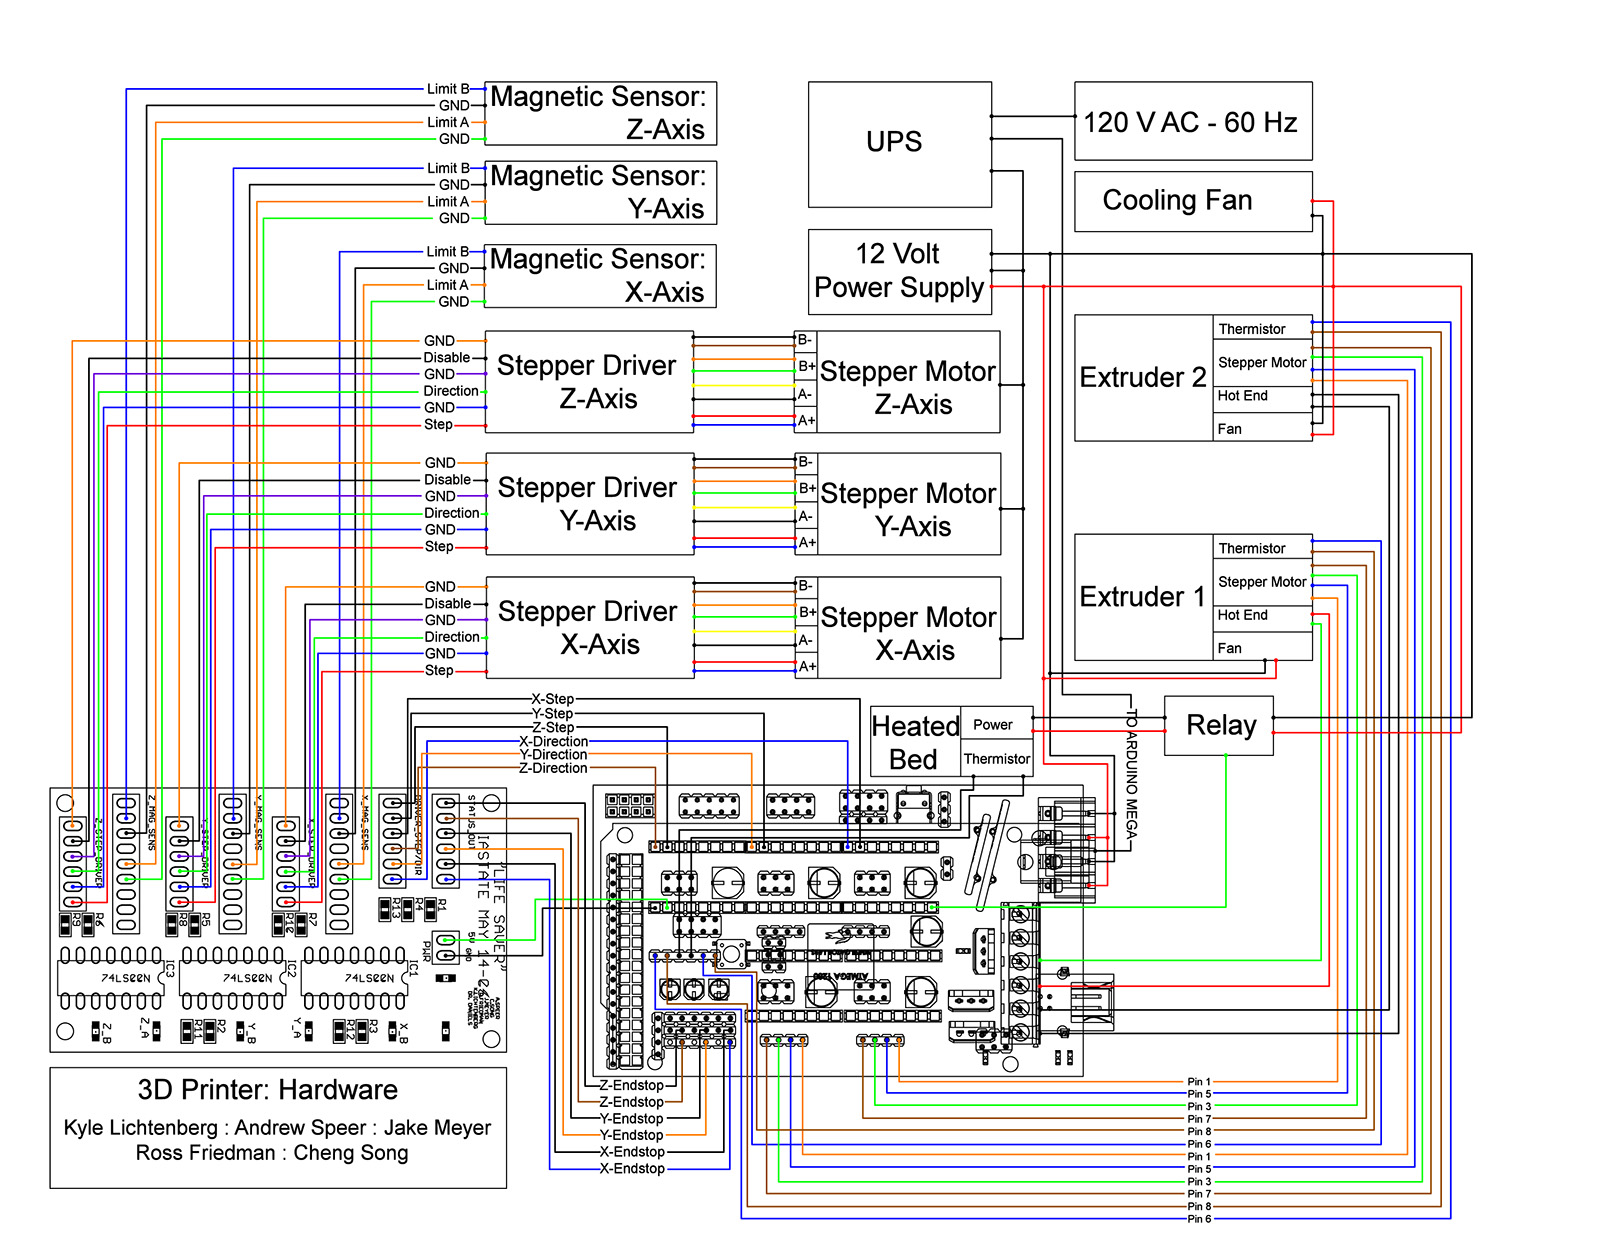 Server Power Supply Wiring Diagram : Server room wiring diagram images